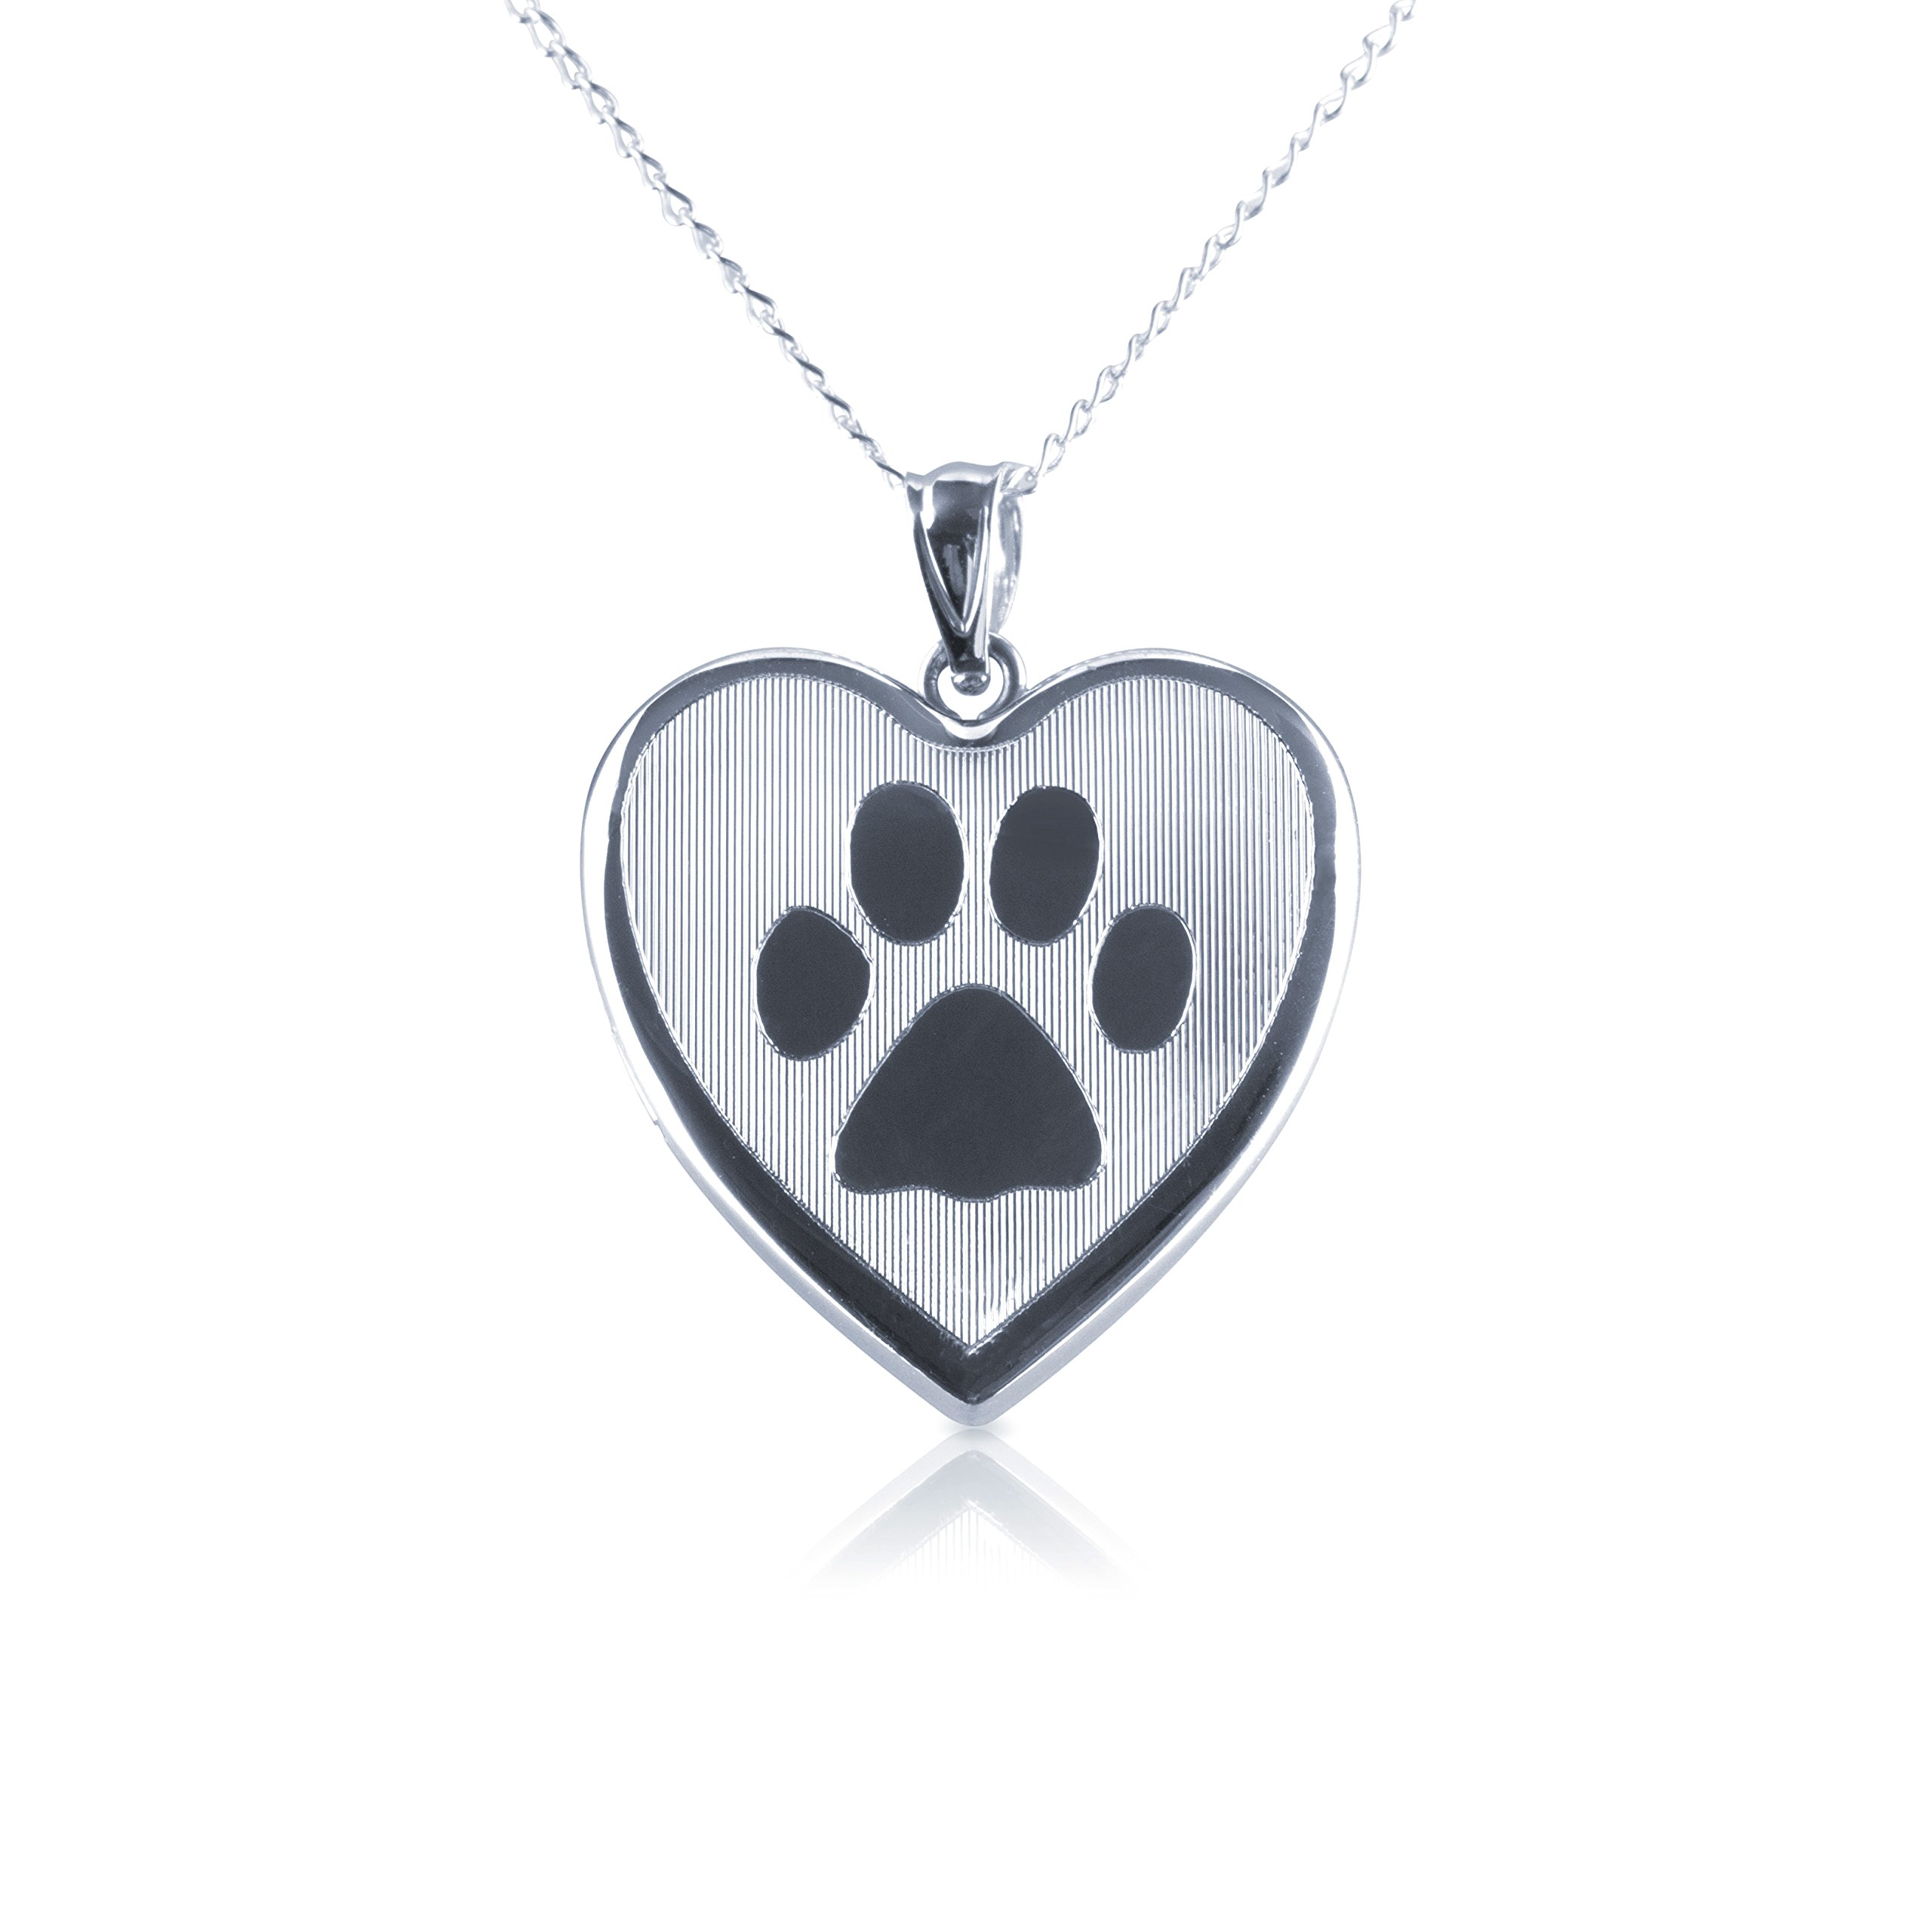 Dog Paw Heart Shape Photo Locket Pendant, Sterling Silver with Necklace Chain by Silver on the Rocks